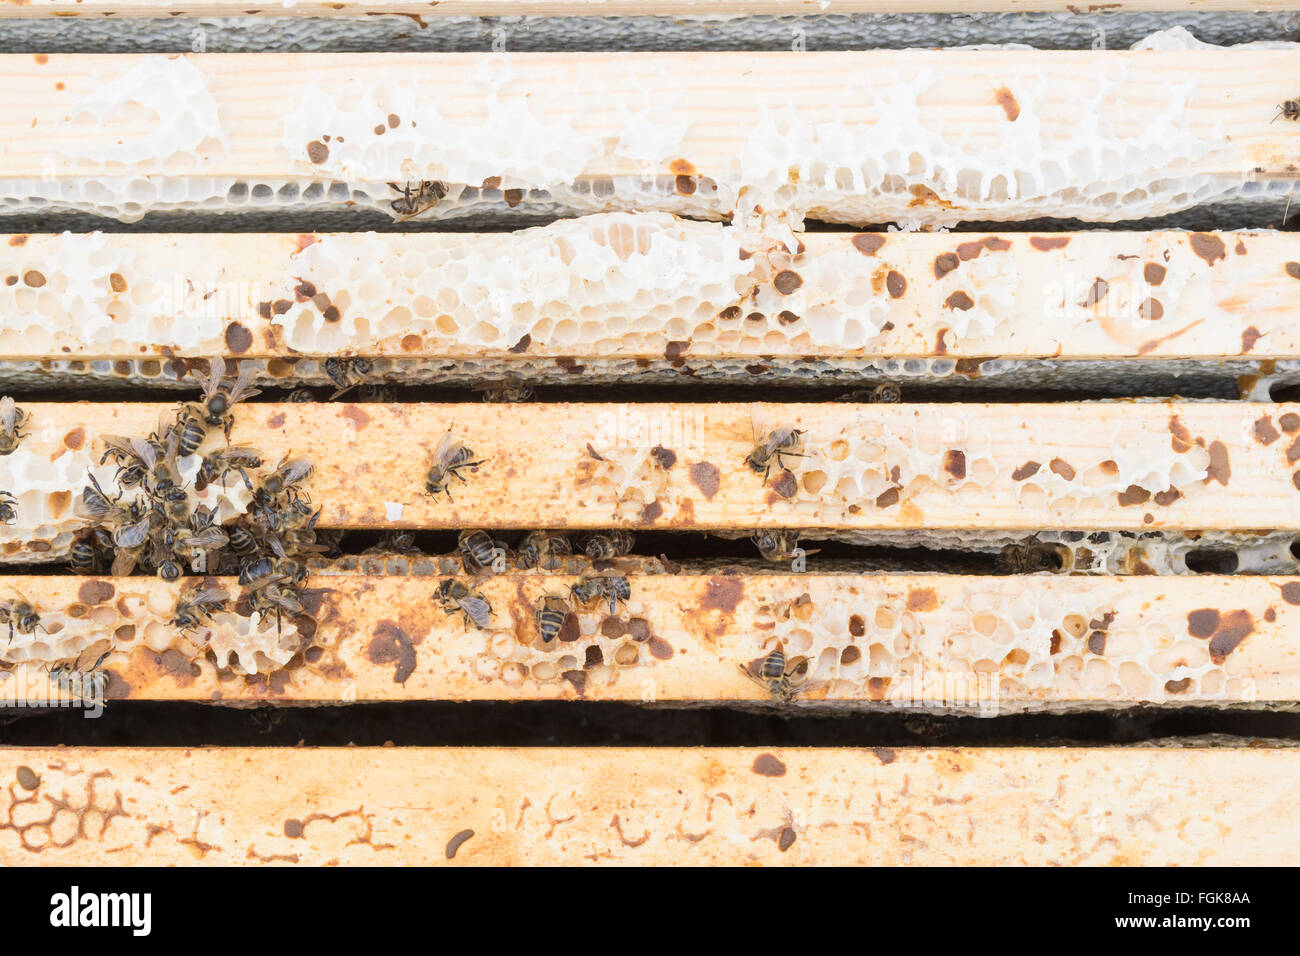 Dead honeybee colony inside beehive where rain water has penetrated the hive (the frames that are a darker colour - Stock Image